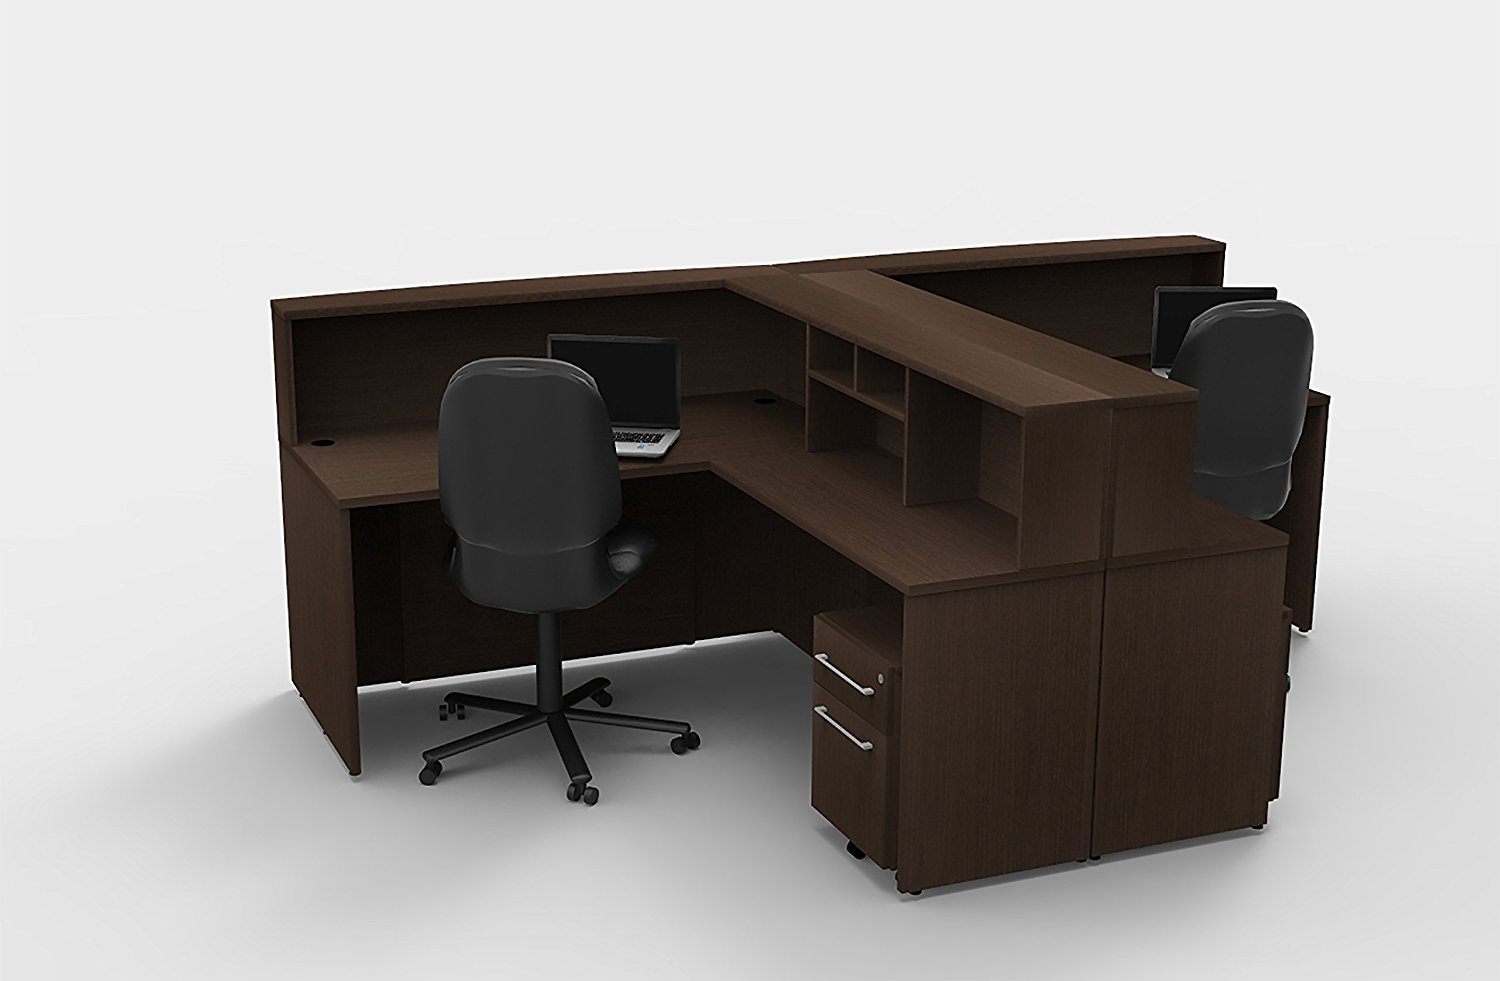 Office Reception Desk Reception Corner Collaboration Furniture Model 4310 10 Pc Group Contemporary Espresso color. Update Your Spaces with Commercial Grade Reception Collaboration Furniture.